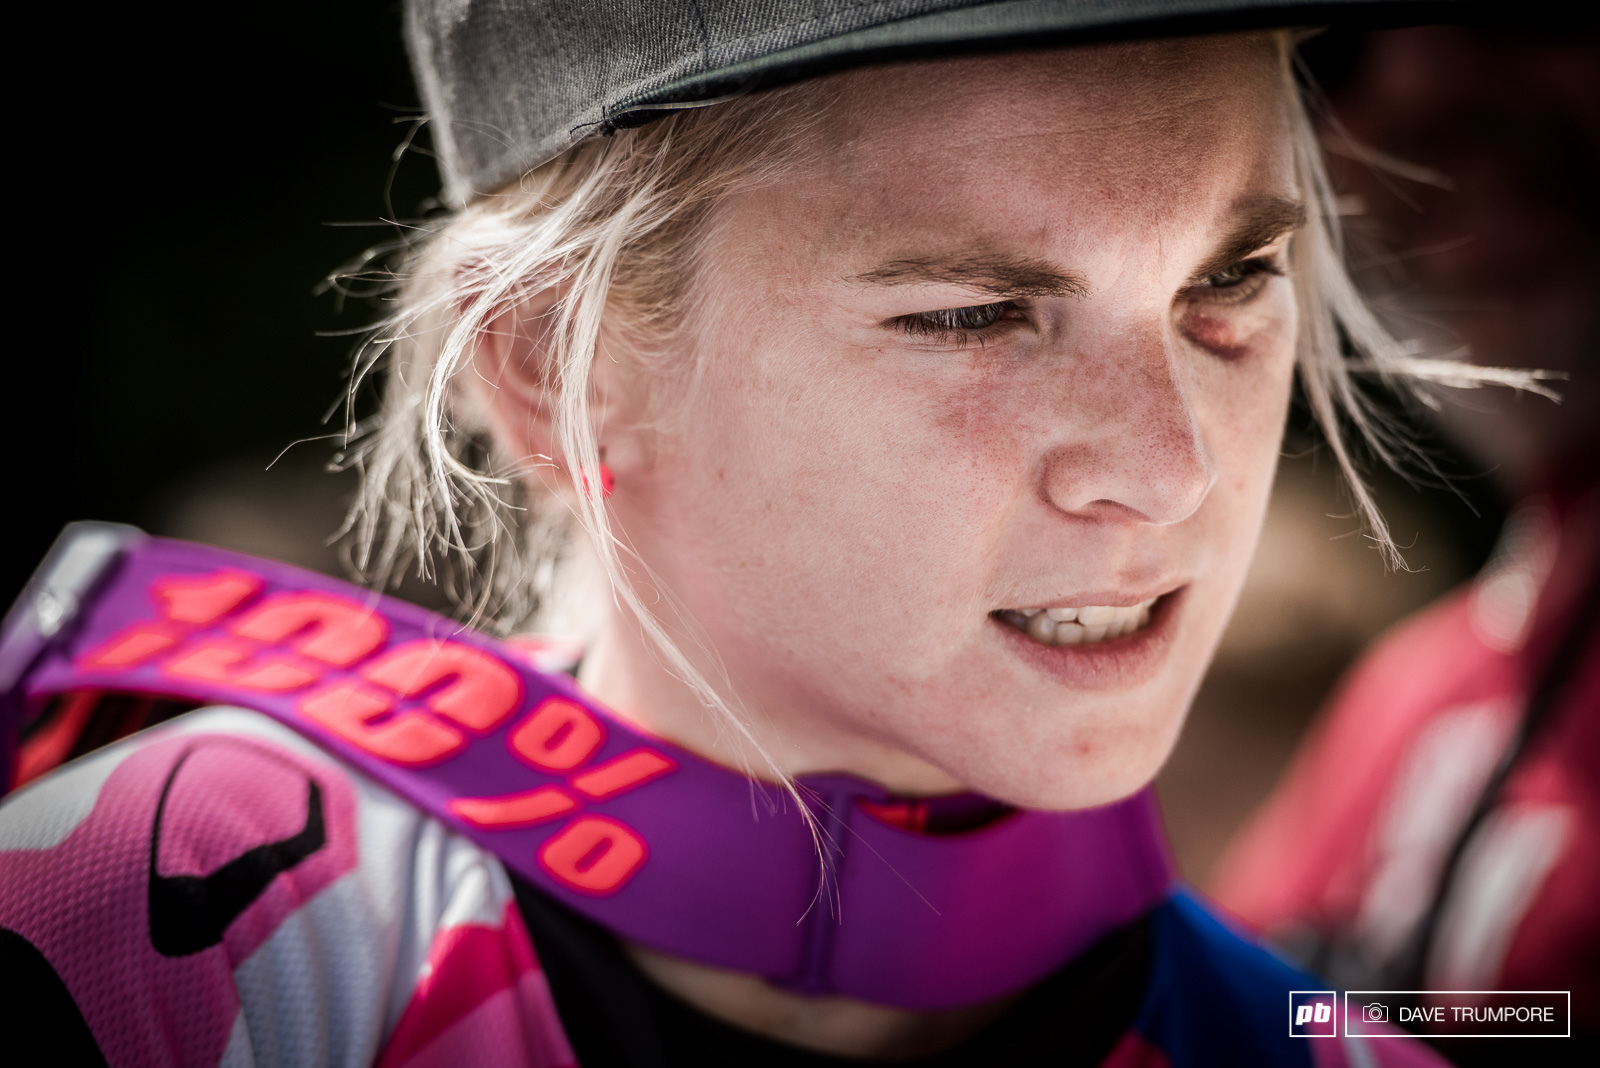 Black eye and all Tracey Hannah dug deep after taking some pretty had hits this weekend. Finish second to Rachel Atherton and inching closer to second in the overall as well.